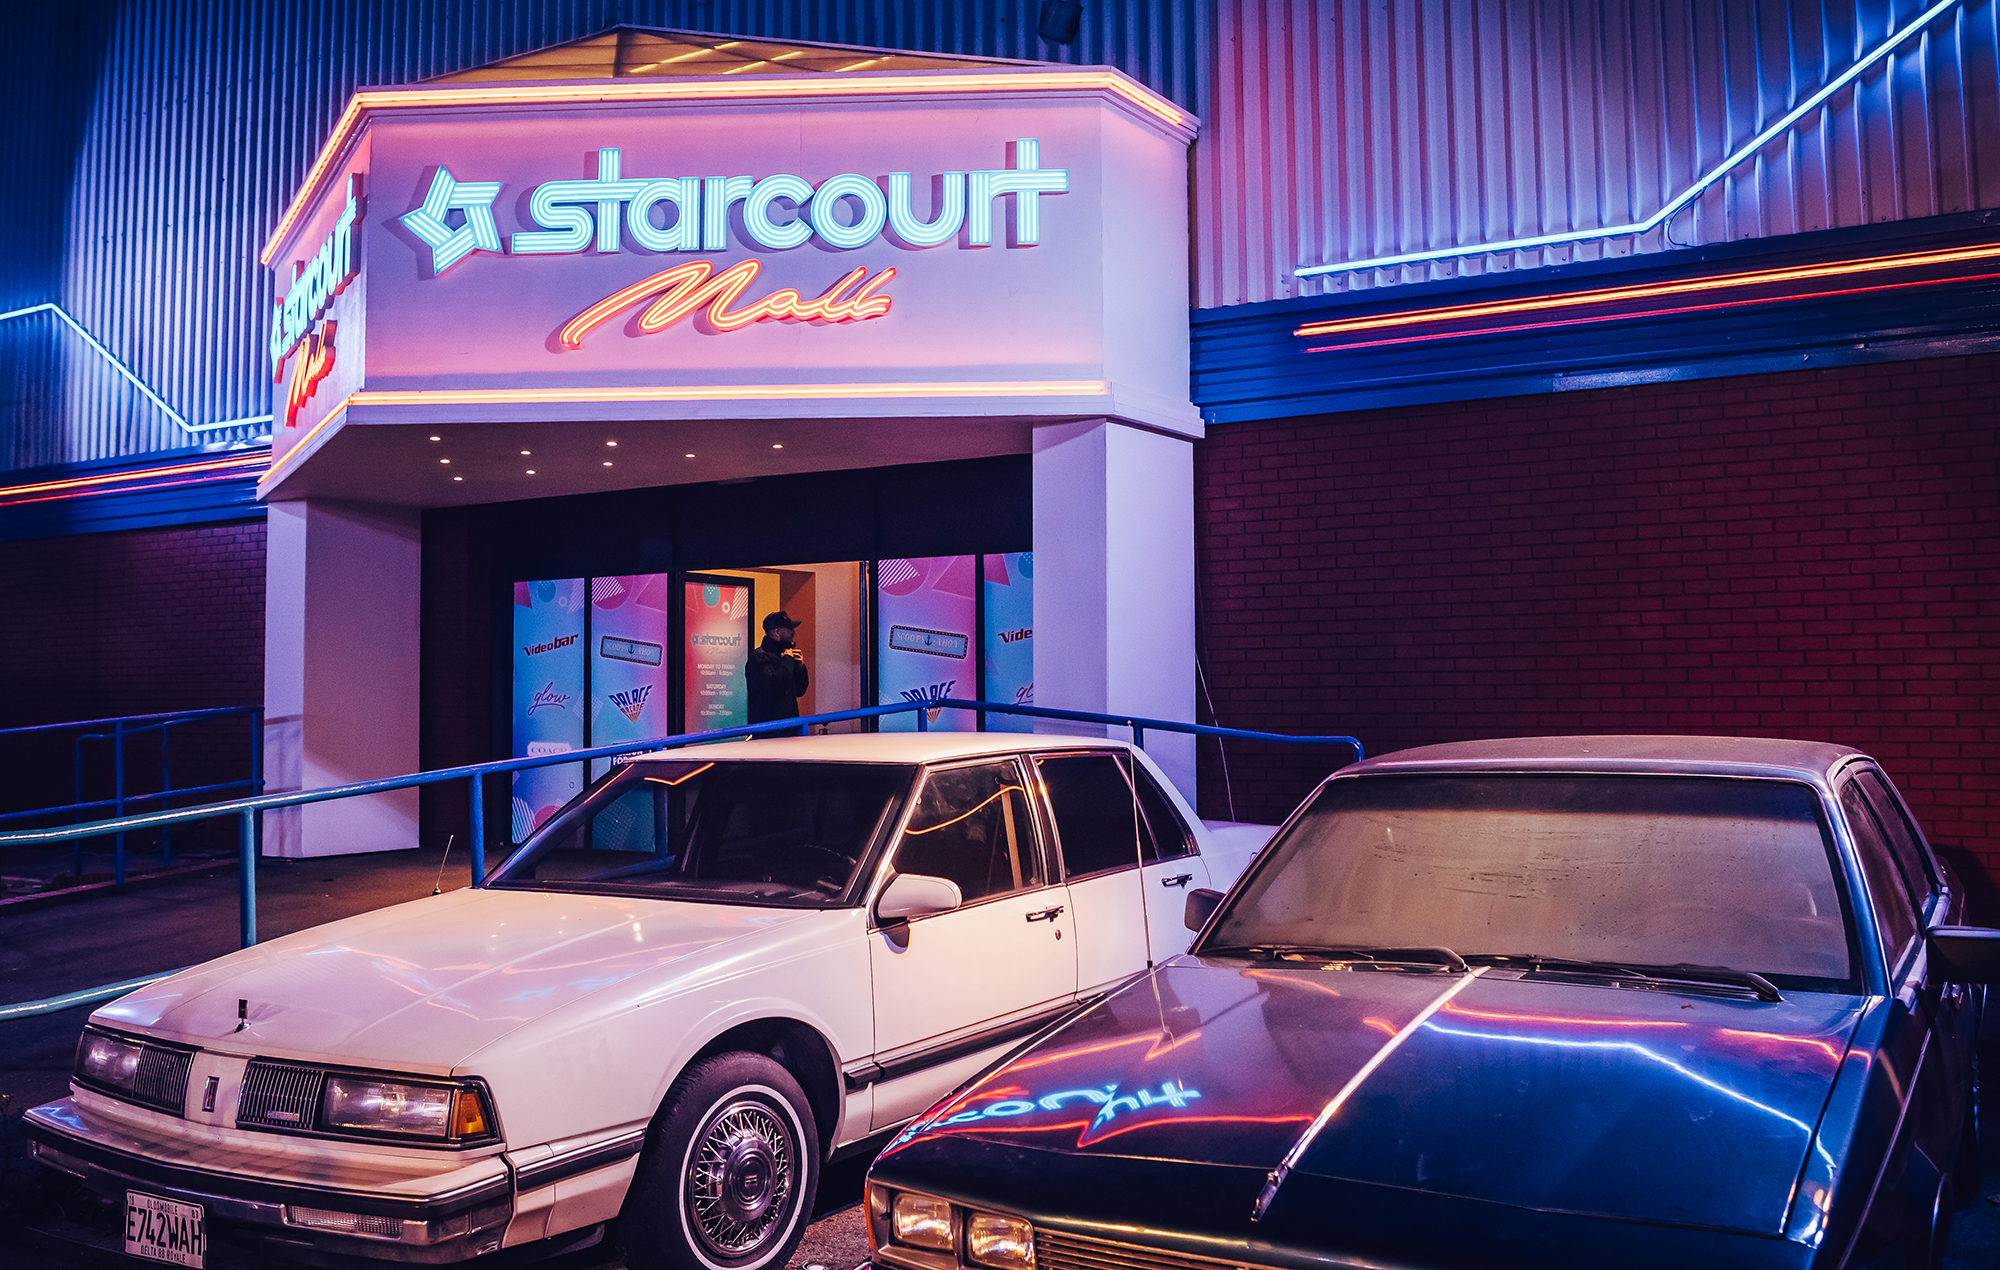 'Secret Cinema Stranger Things' review: an immersive Starcourt Mall experience